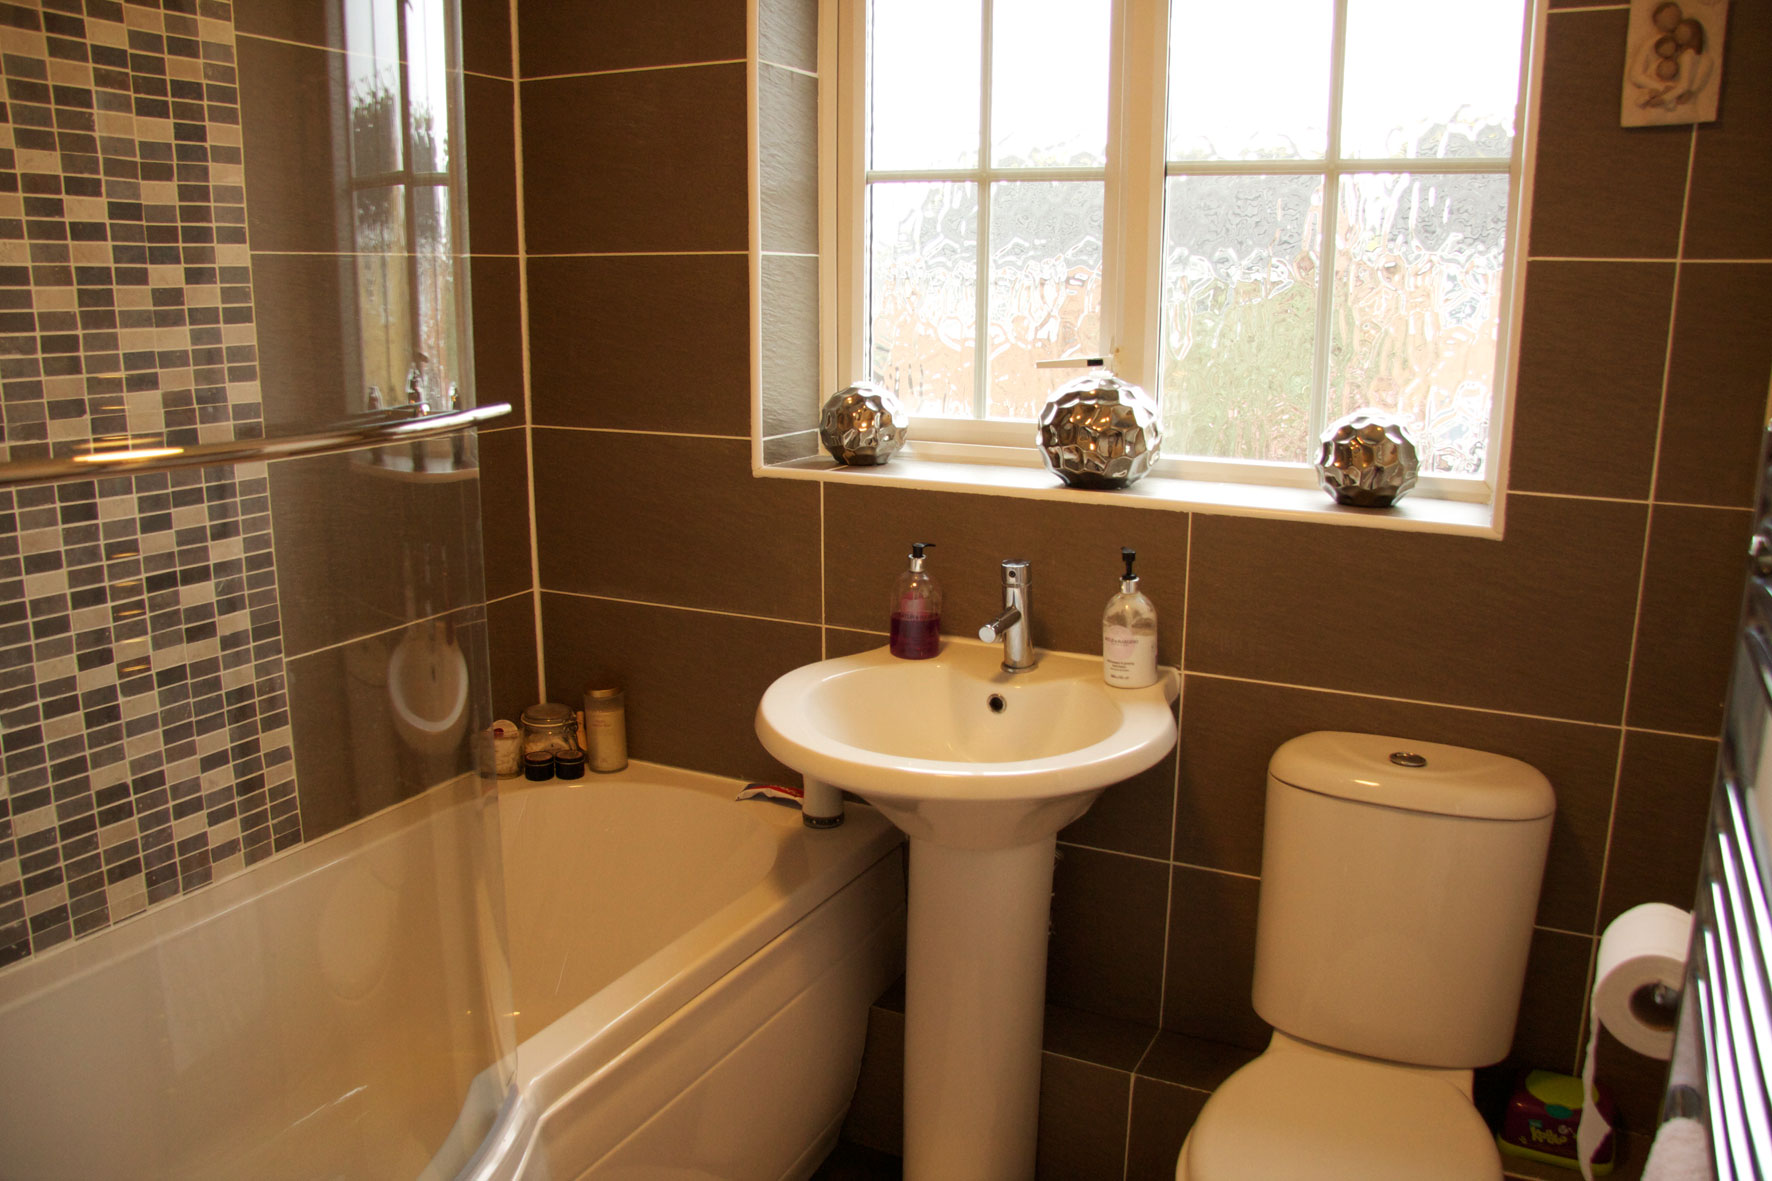 work ac homeworks northampton based home improvements On pictures of new bathrooms